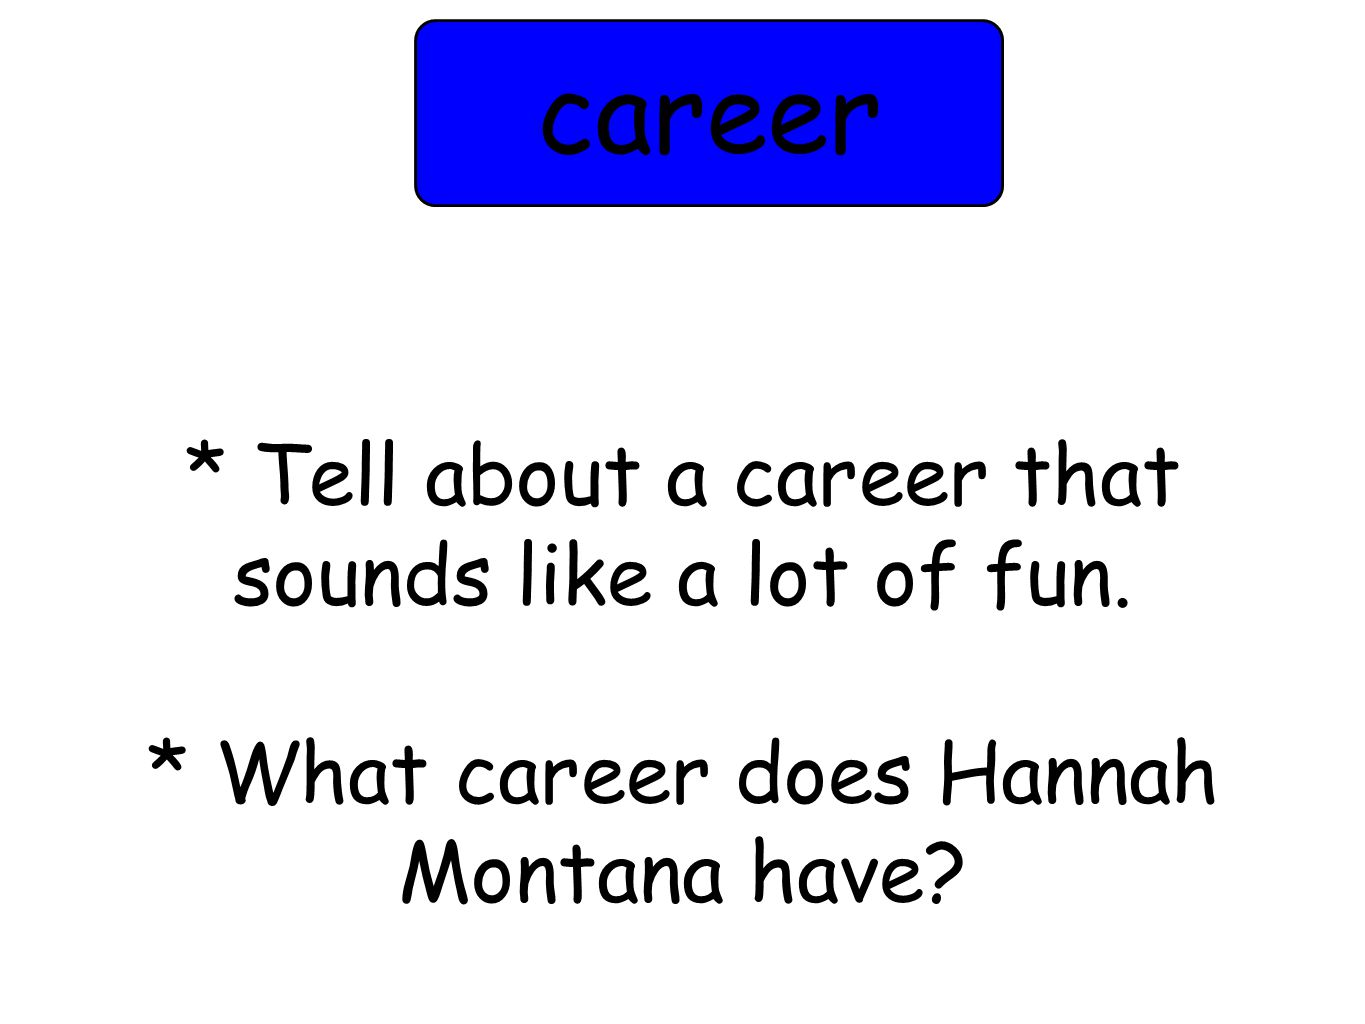 * Tell about a career that sounds like a lot of fun. * What career does Hannah Montana have? career